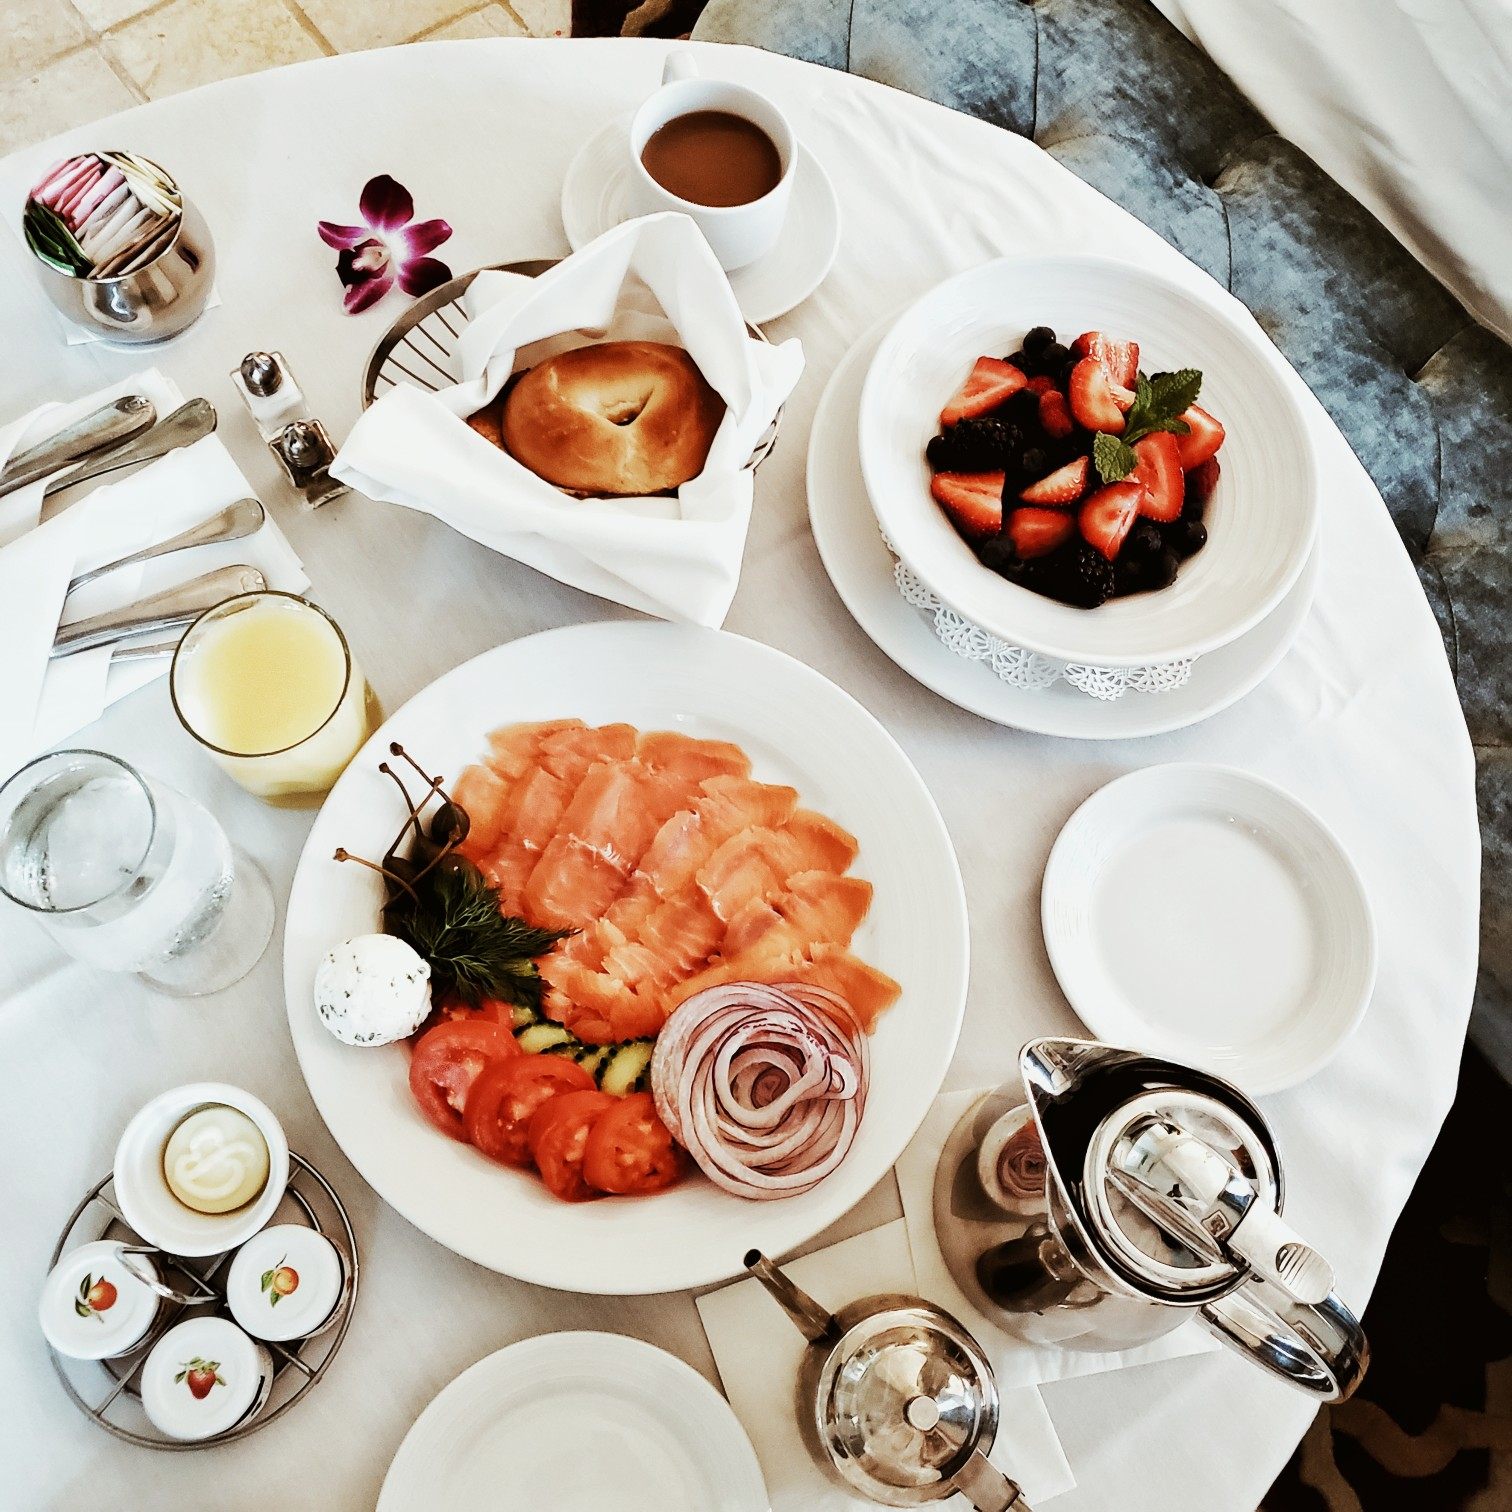 Biltmore Hotel Miami Coral Gables Room Service Breakfast by Travel Blogger Afroza Khan